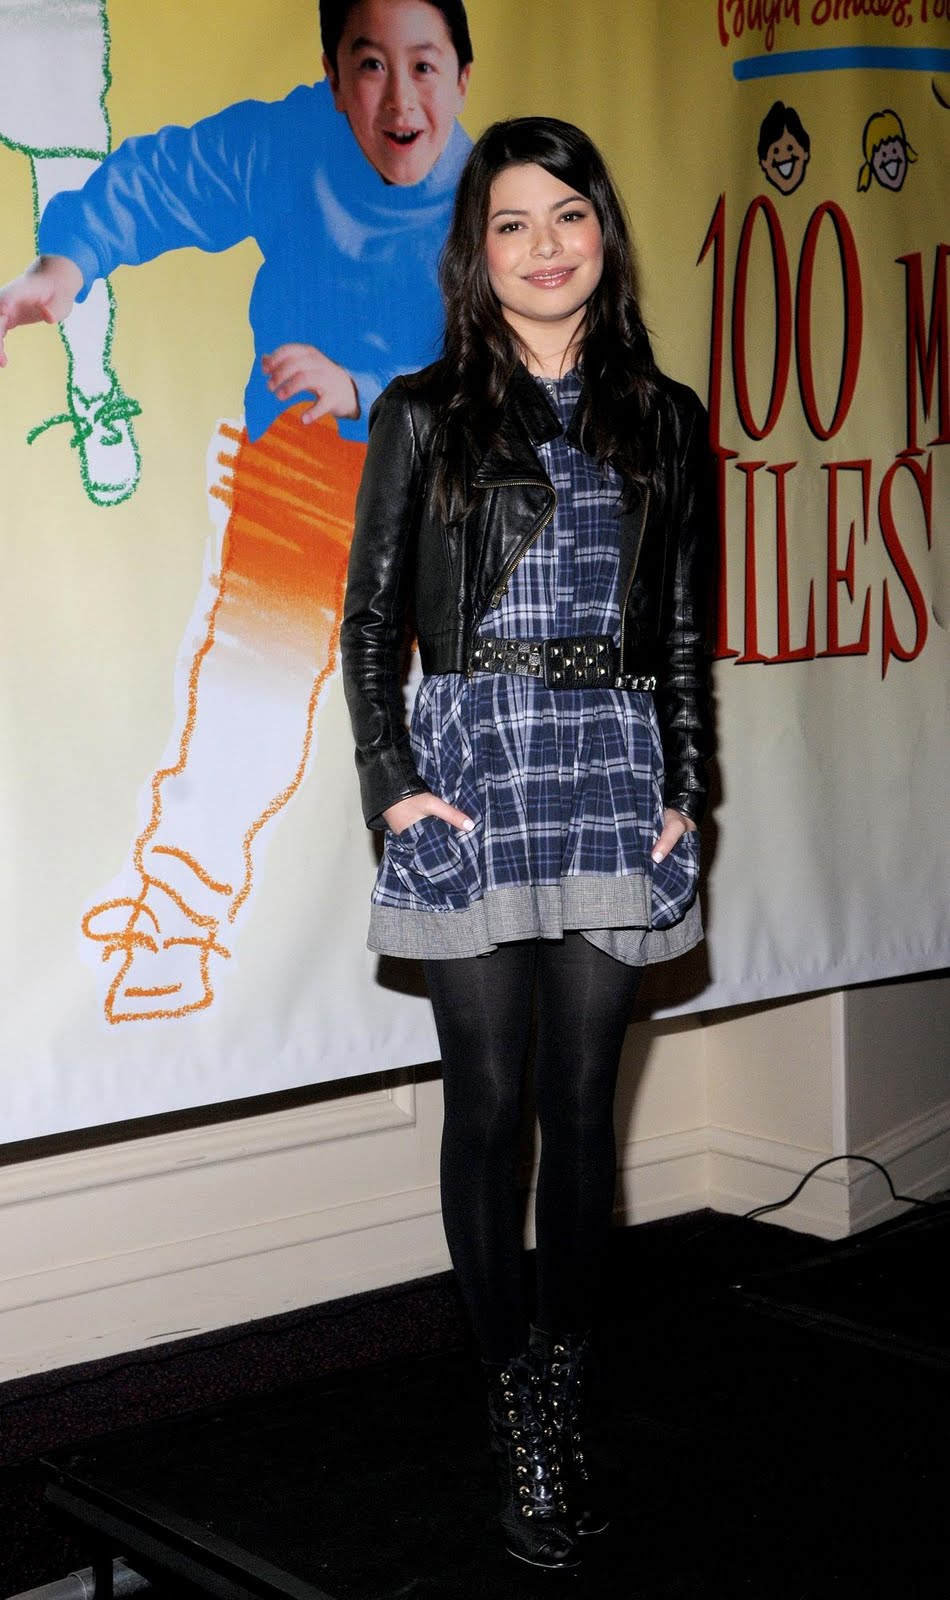 Pantyhose celebrities: Miranda Cosgrove in black pantyhose